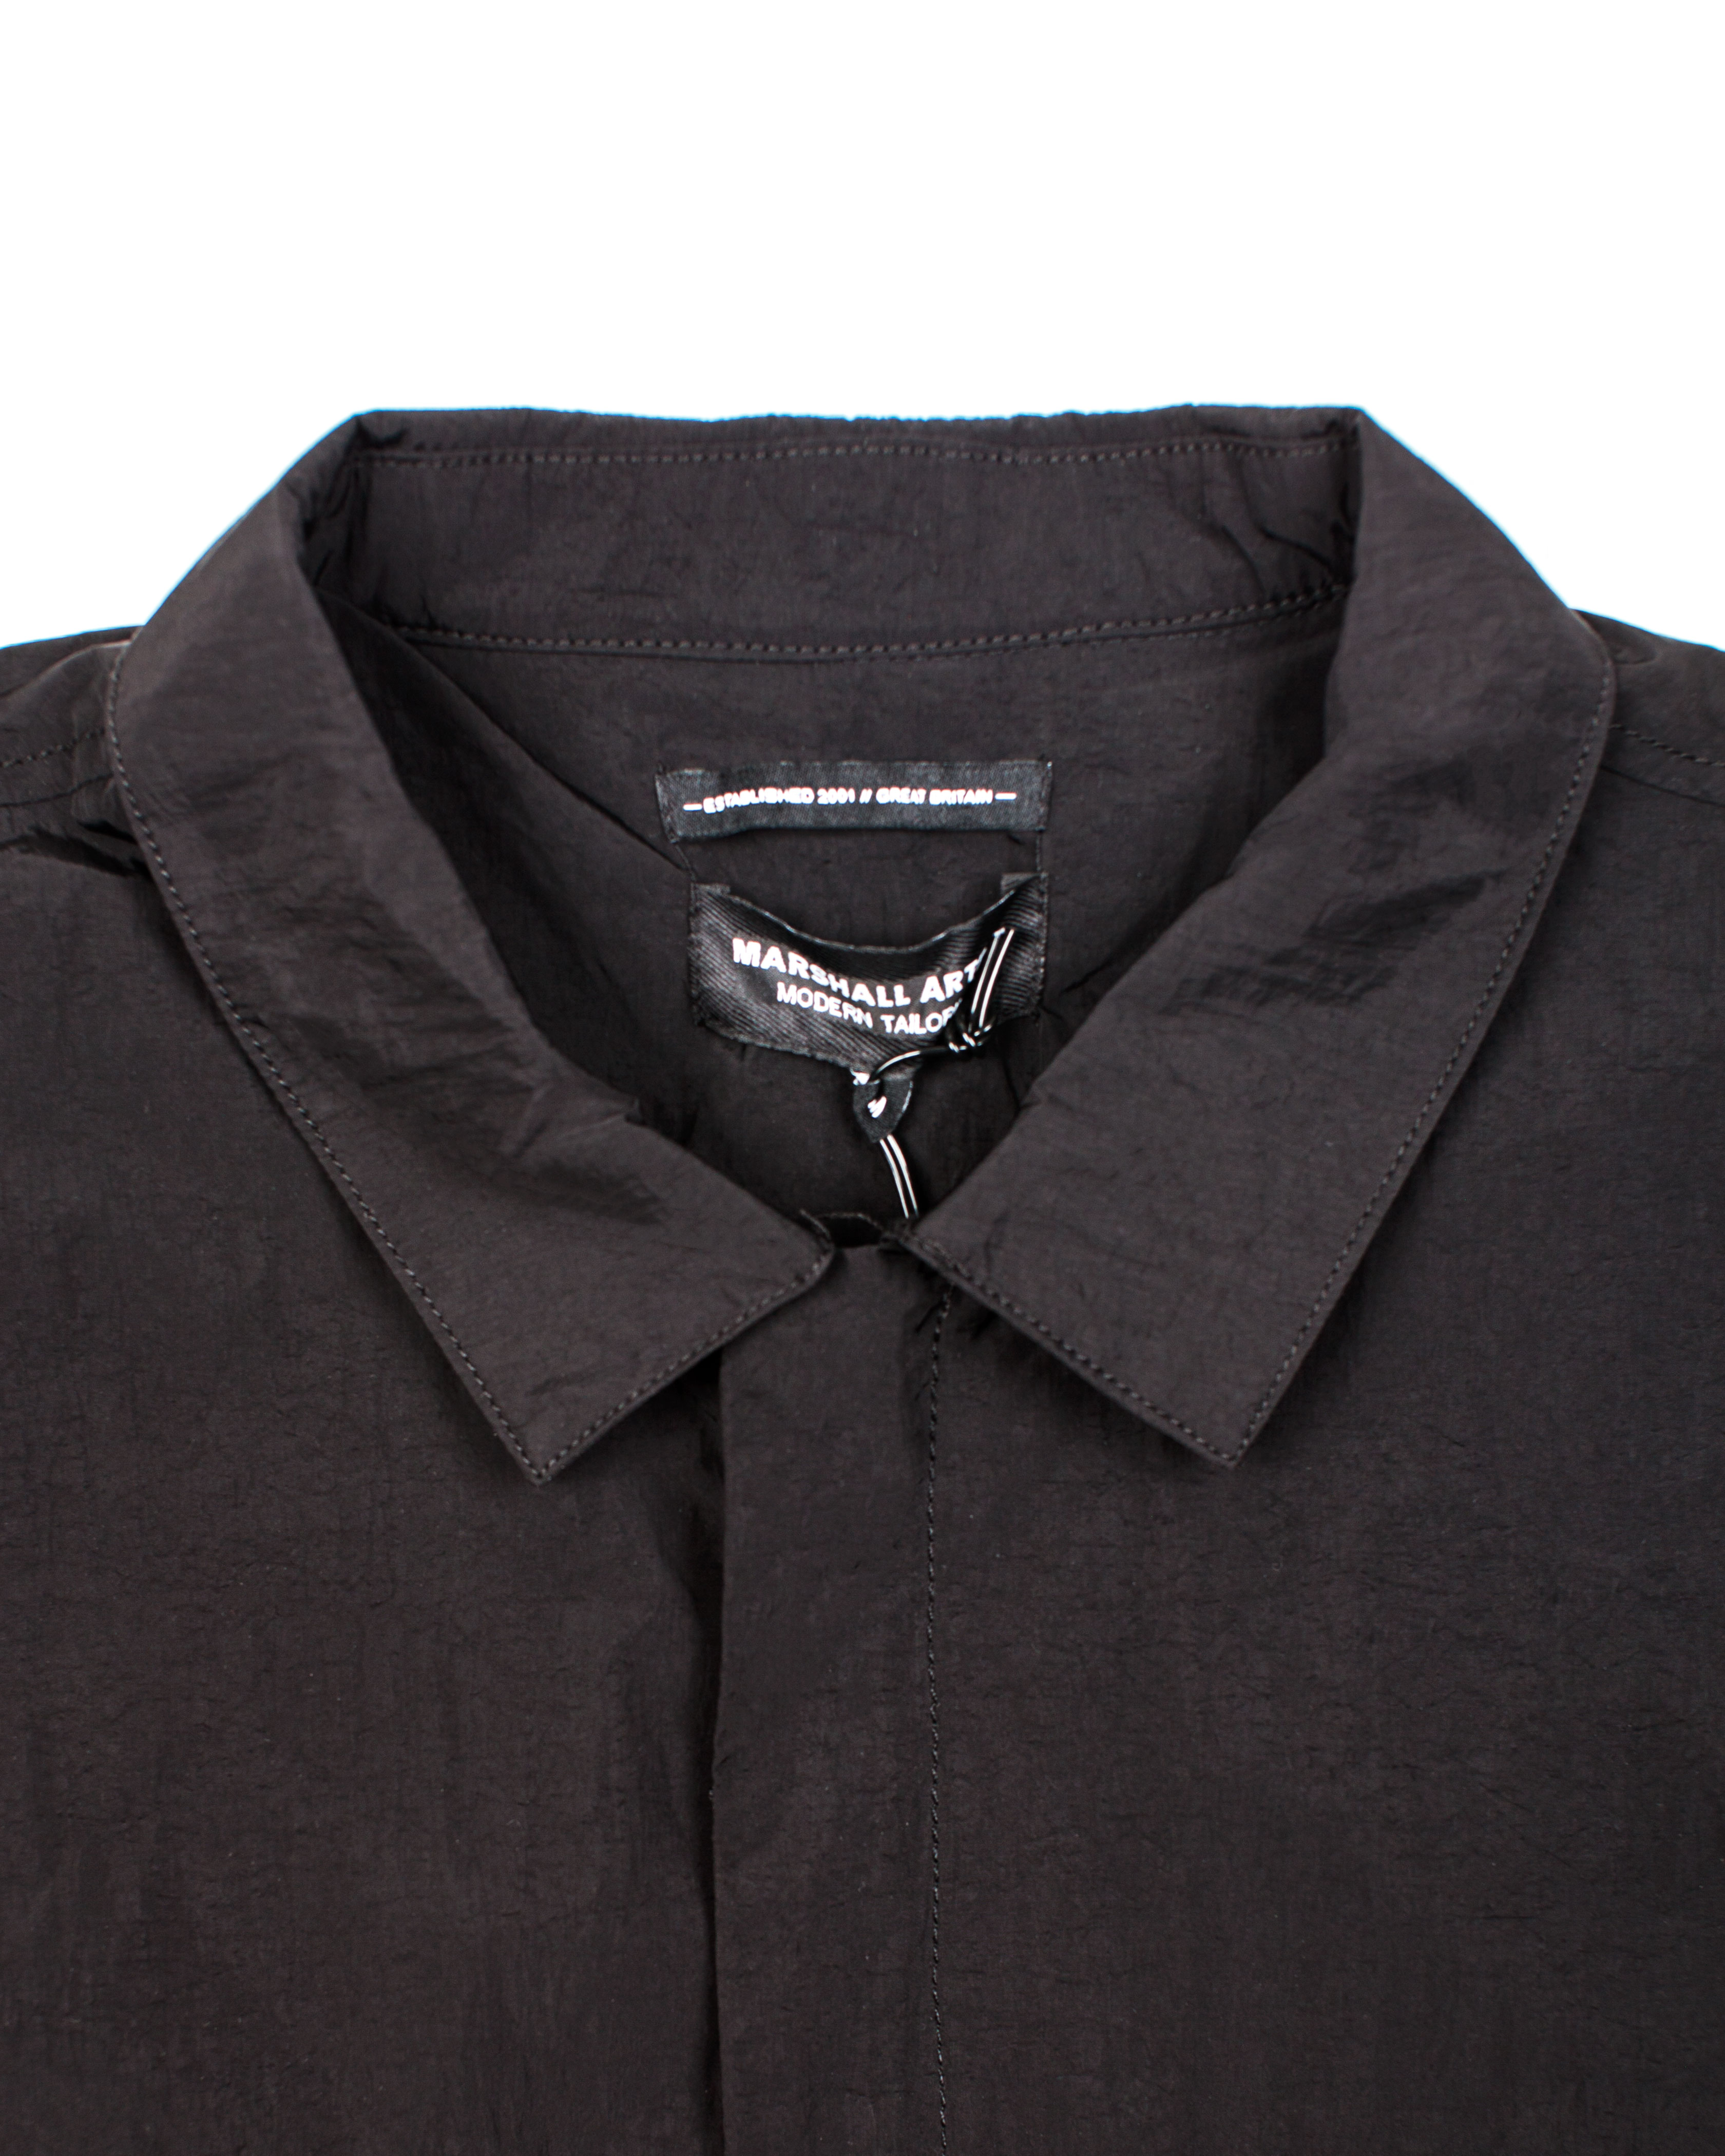 b8951c4e796 Ветровка Marshall Artist Liquid Bellow Overshirt Black